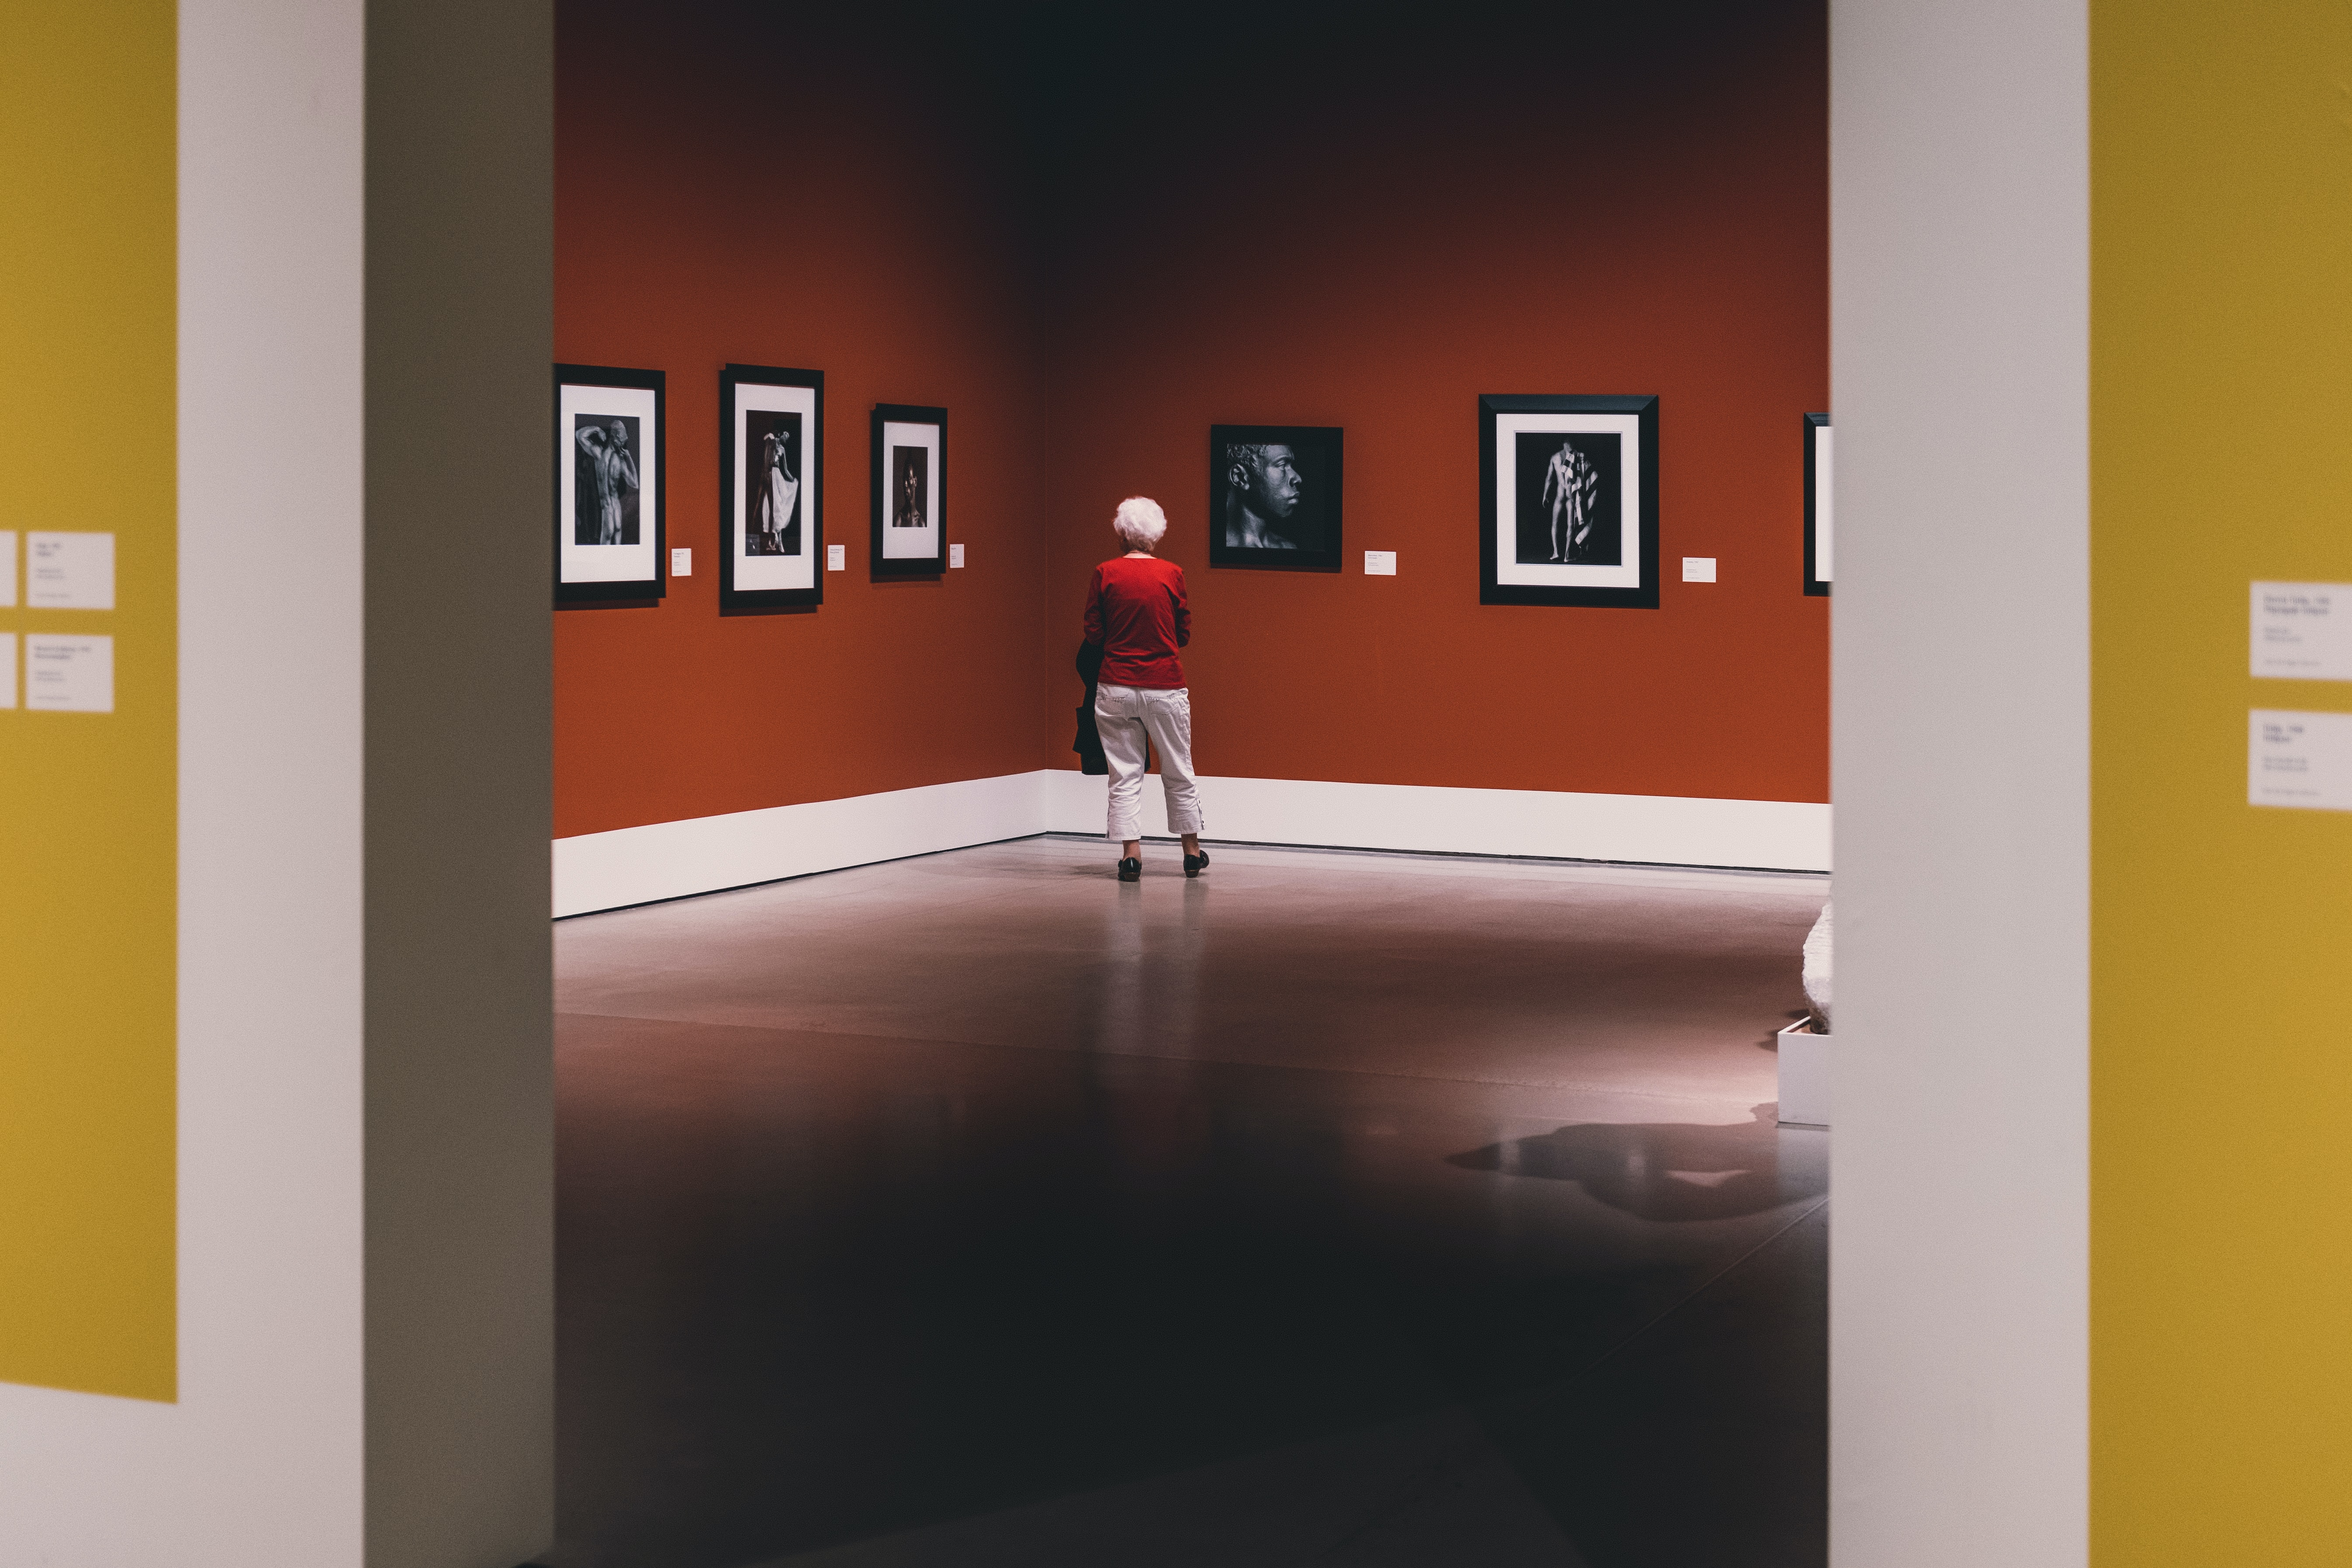 photography of person standing in front of portrait